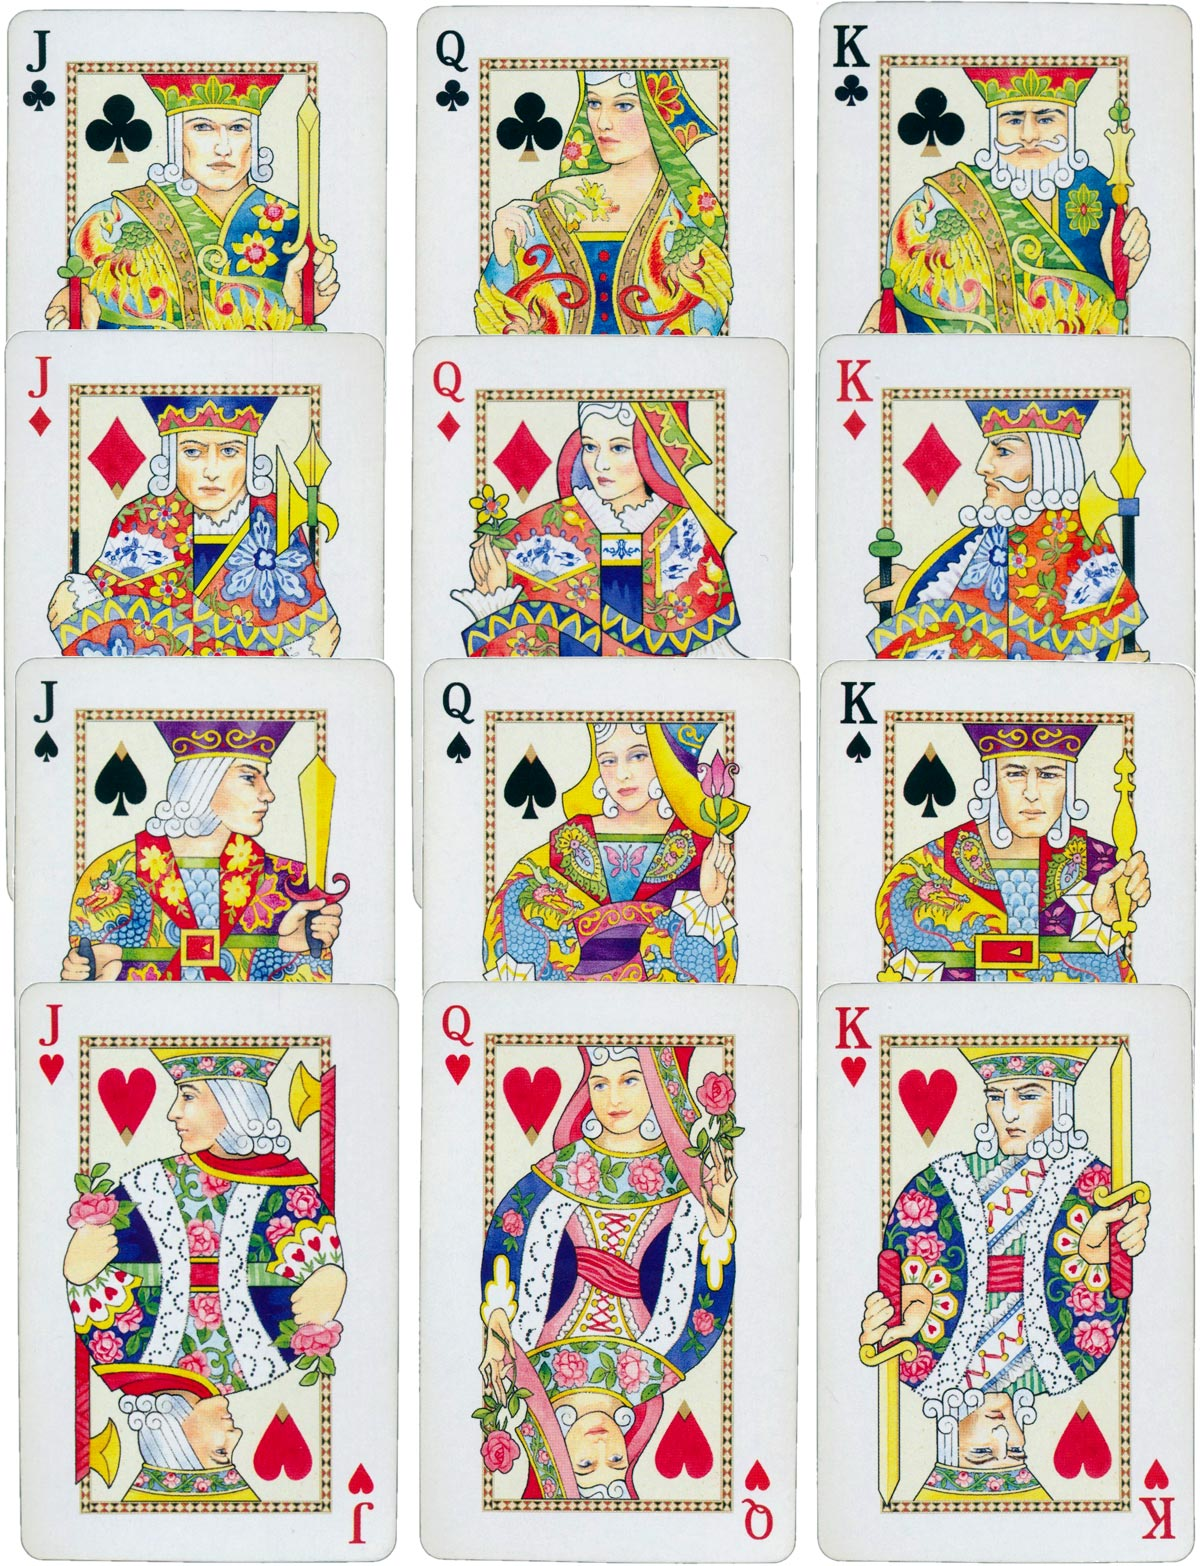 'Geisha Girls' playing cards published by Punch Studio, Culver City, CA., 2013